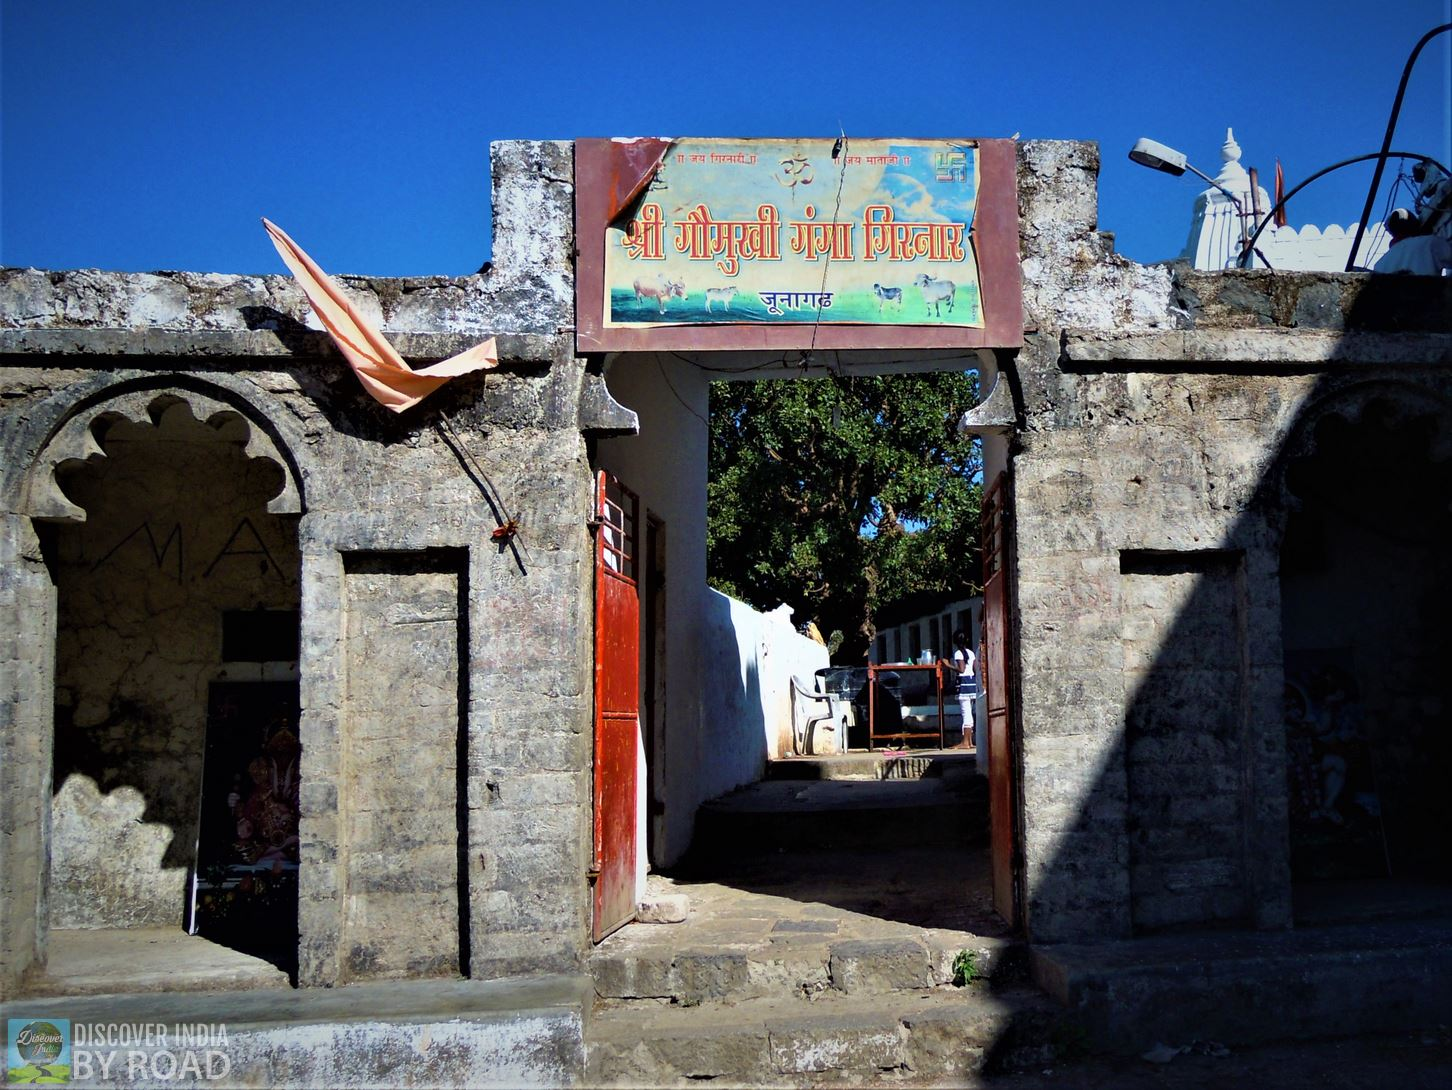 Goumukhi Ganga sign board during trek to girnar